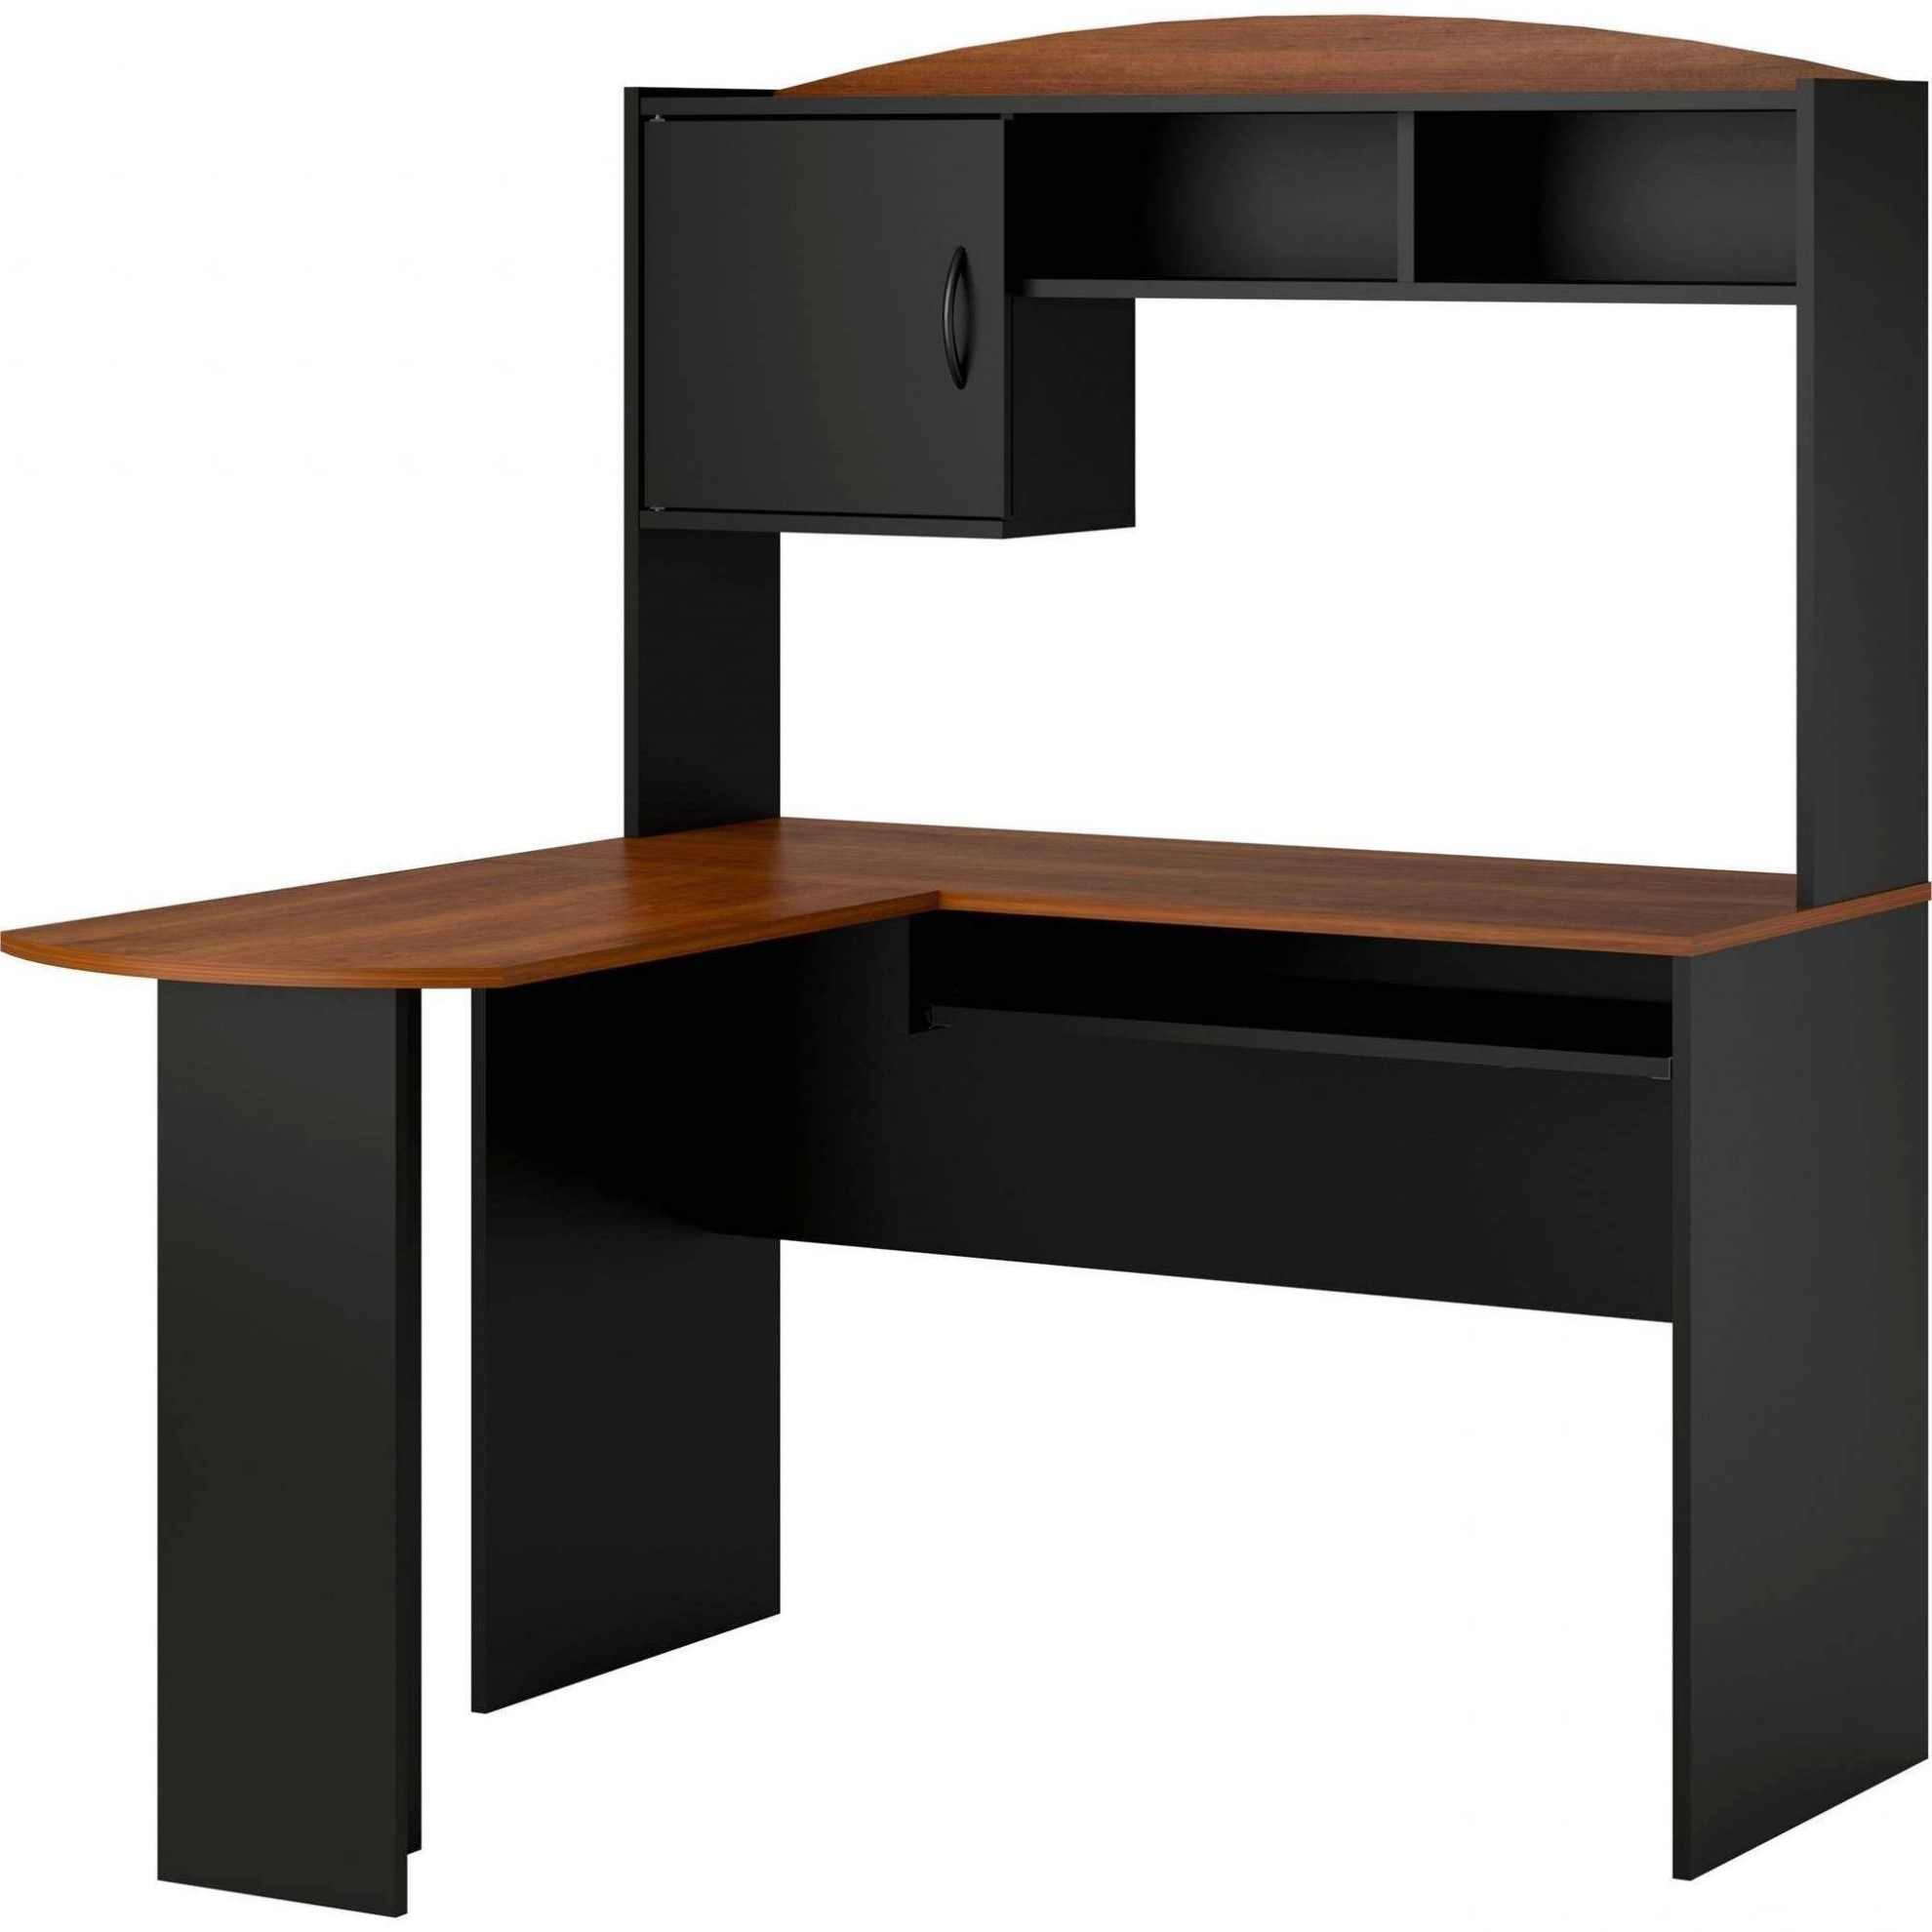 Computer Desk From Walmart (View 4 of 20)